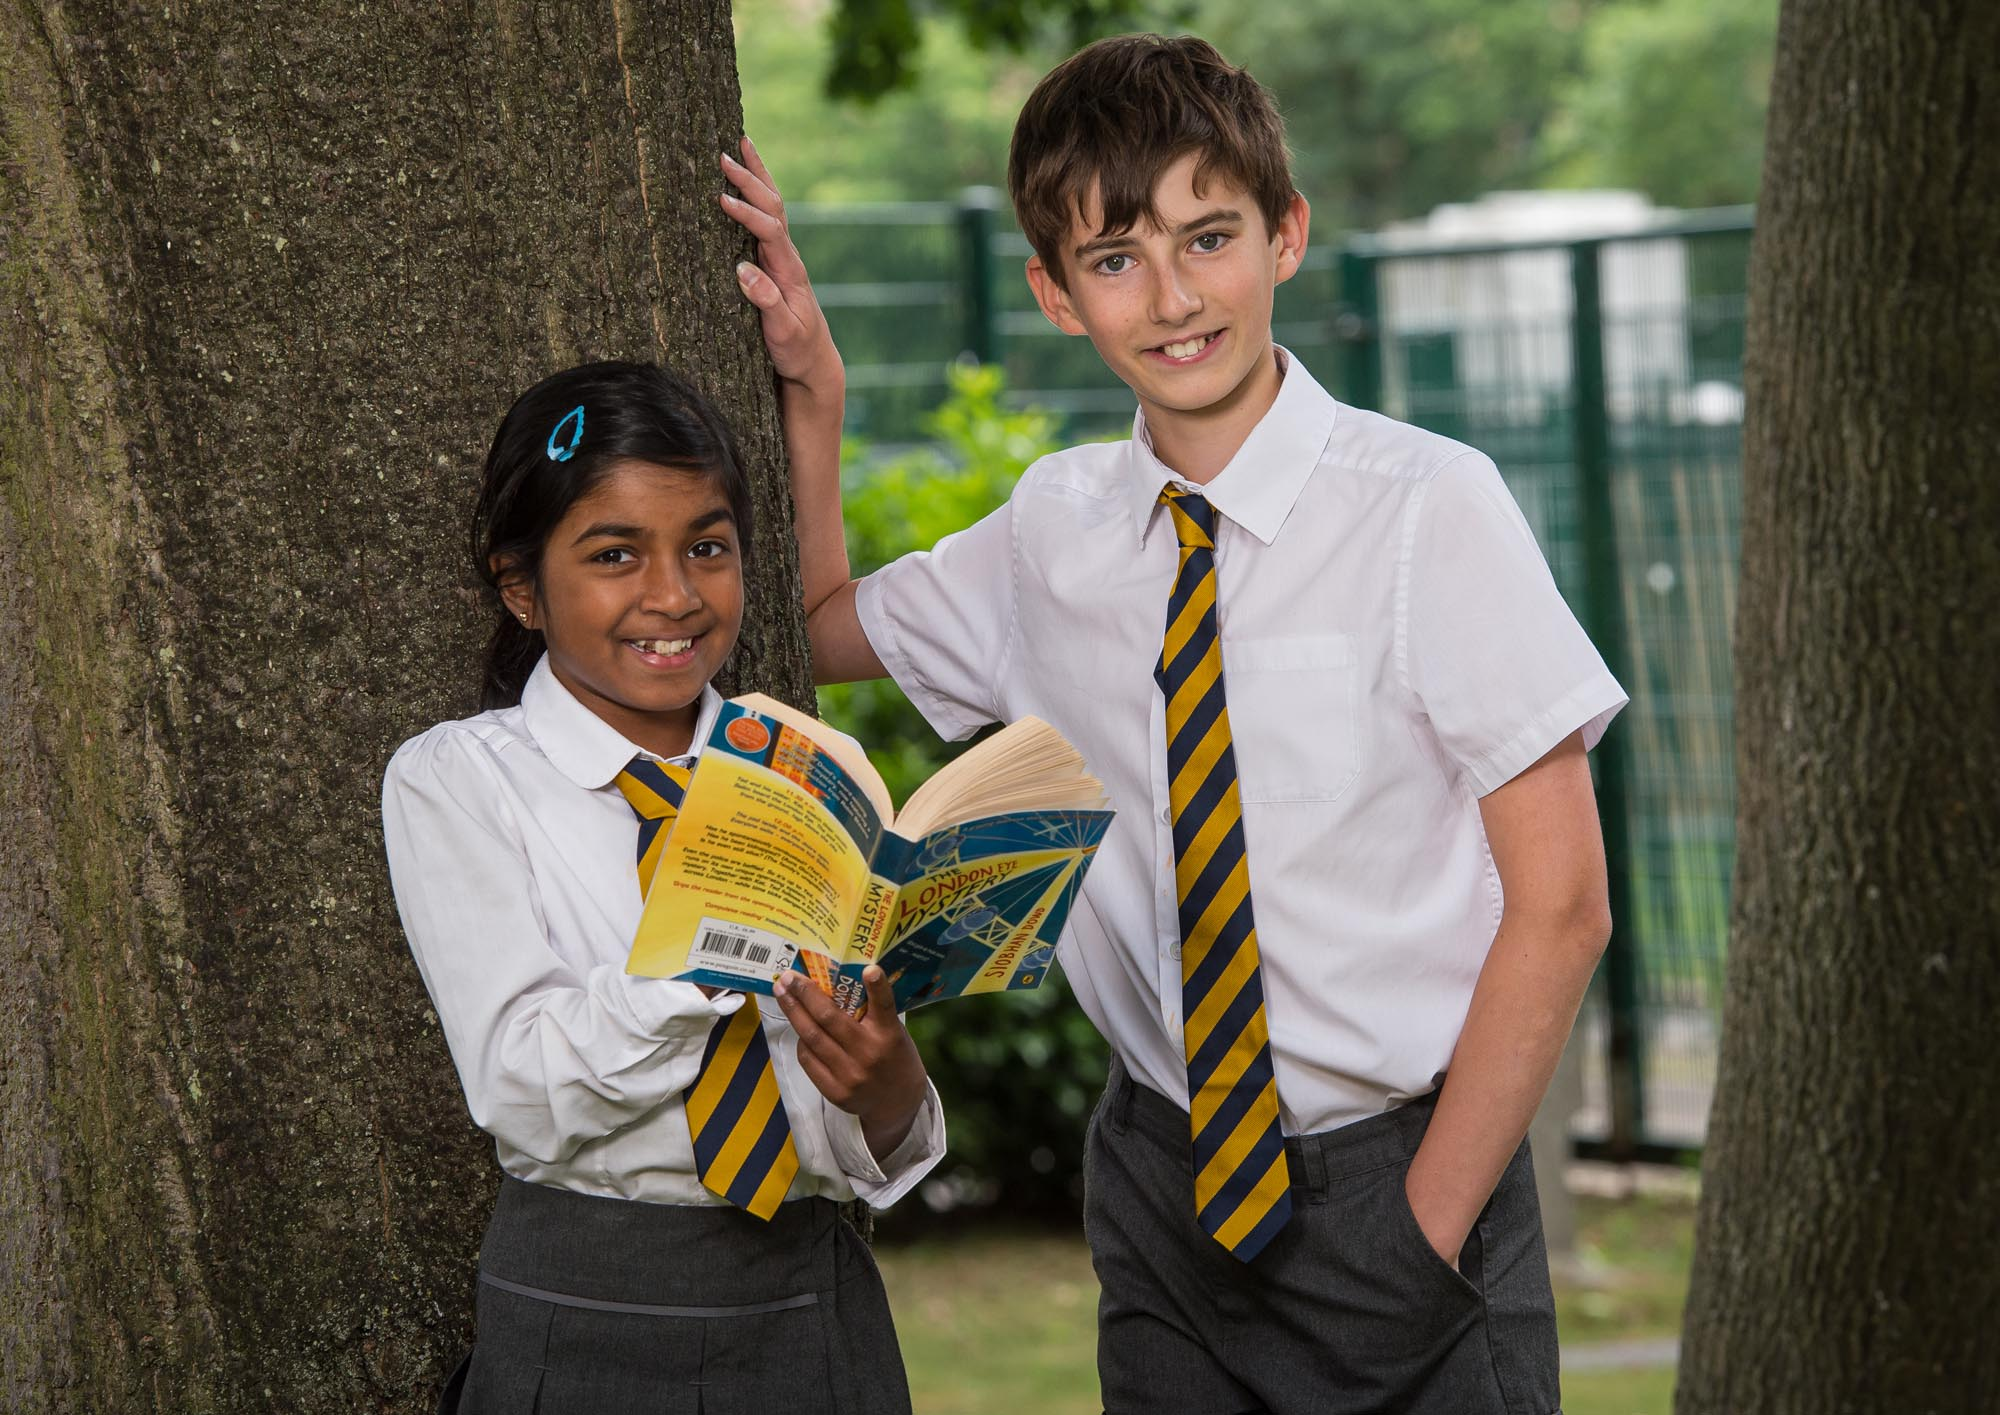 Boy and girl by tree reading book